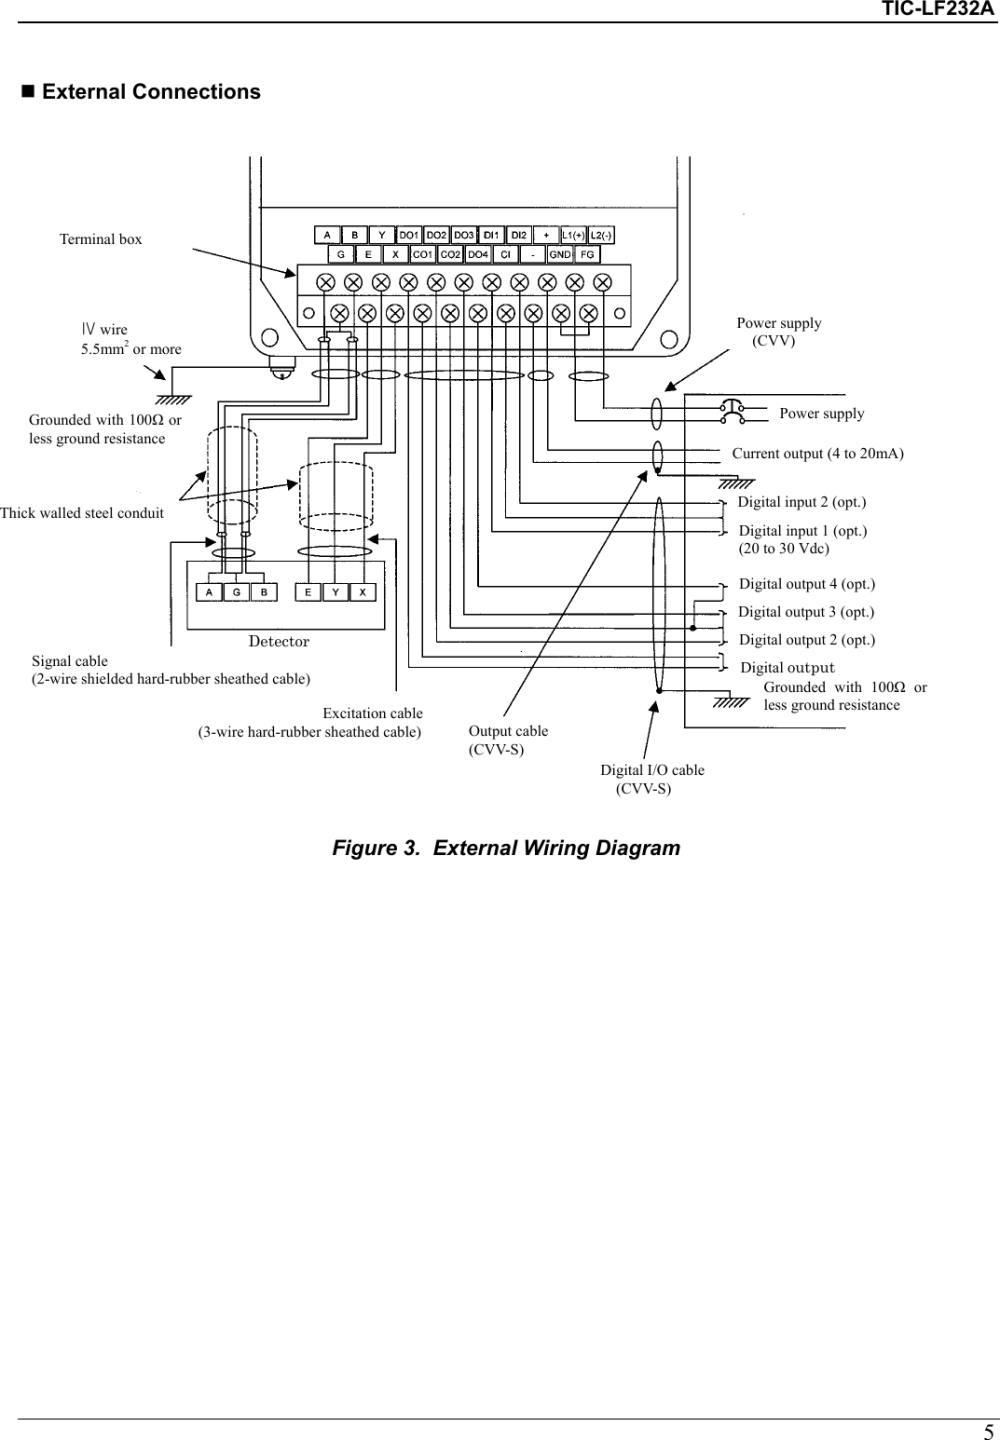 medium resolution of page 5 of 8 toshiba toshiba electromagnetic flowmeter converter tic